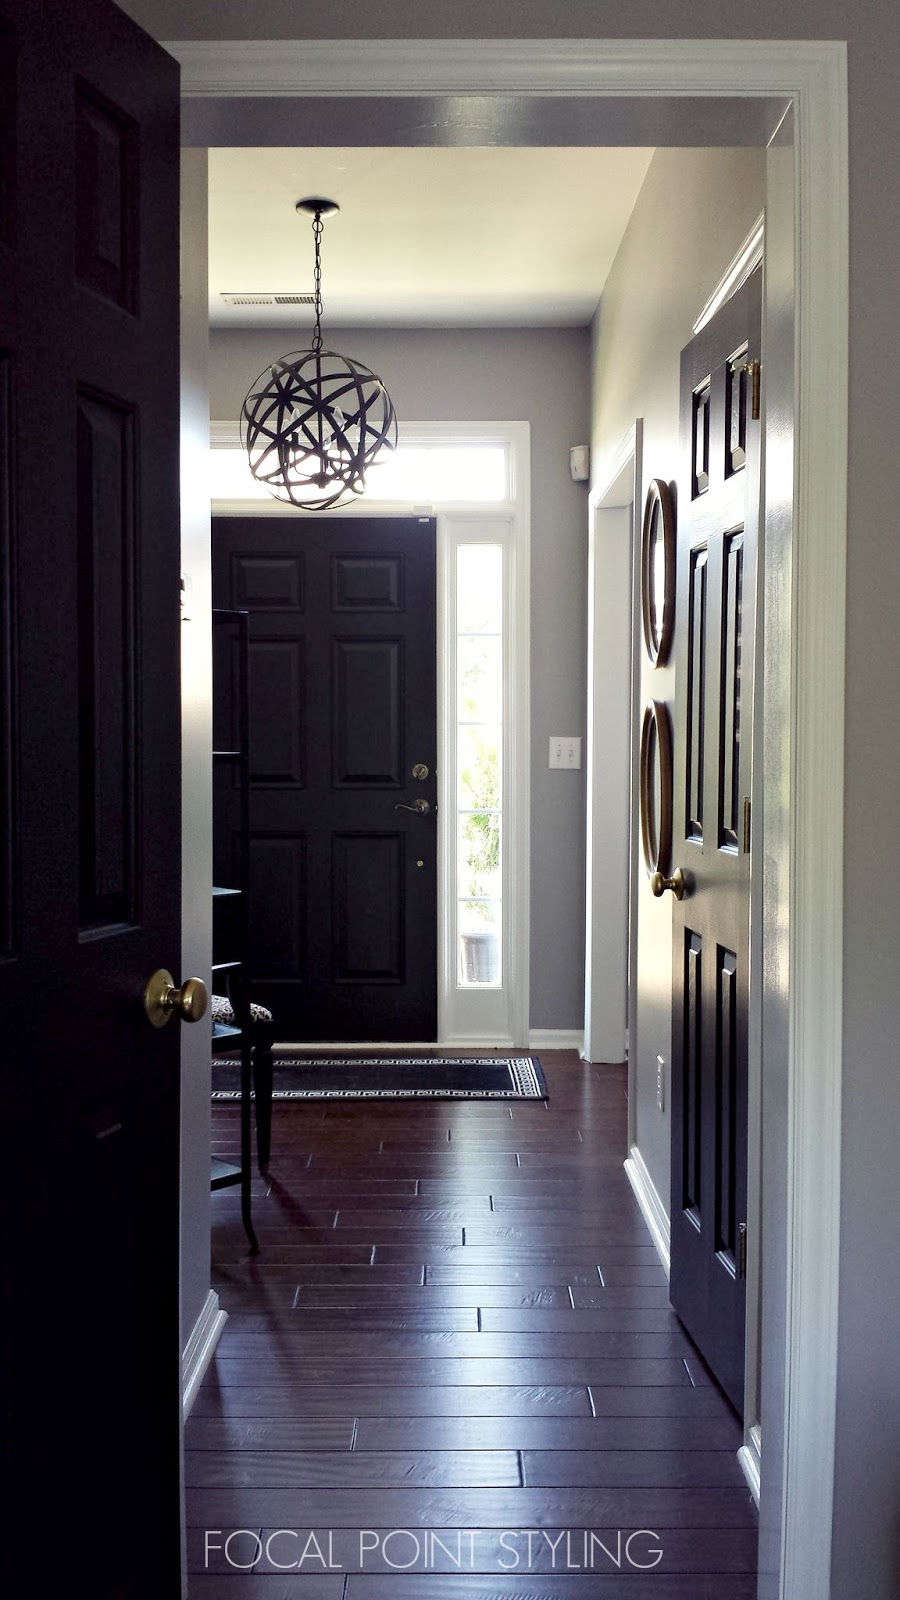 FOCAL POINT STYLING: How To Paint Interior Doors Black ...